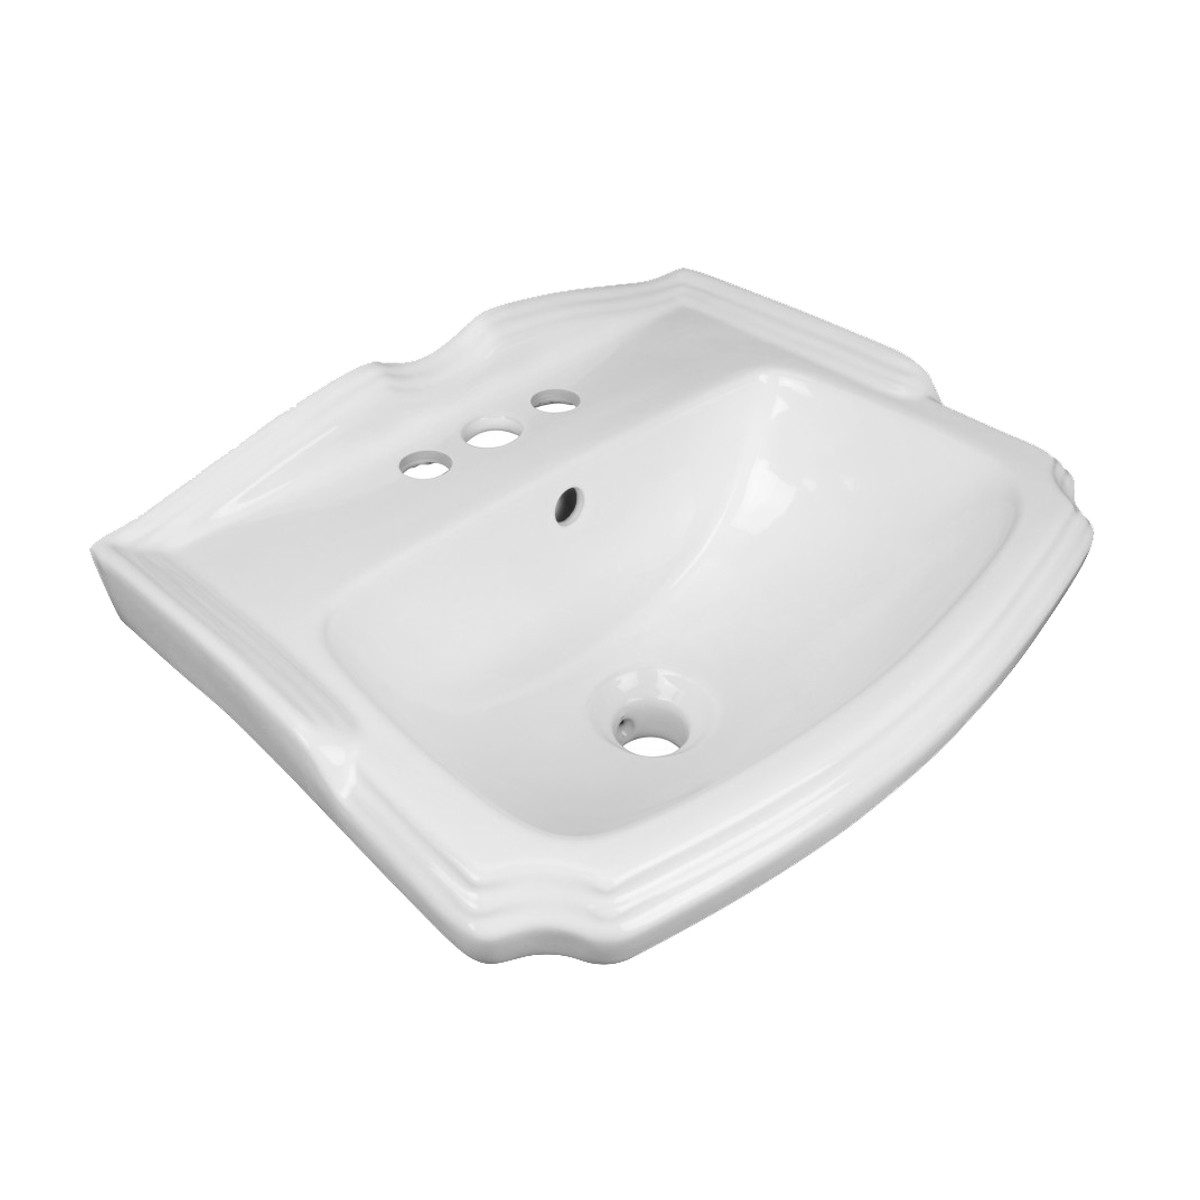 Renovators Supply White Small Wall Mount Sink with Faucet, Drain and PTrap Small Wall Mount Bathroom Sink Wall Mount Bathroom Sink White Bathroom Sink